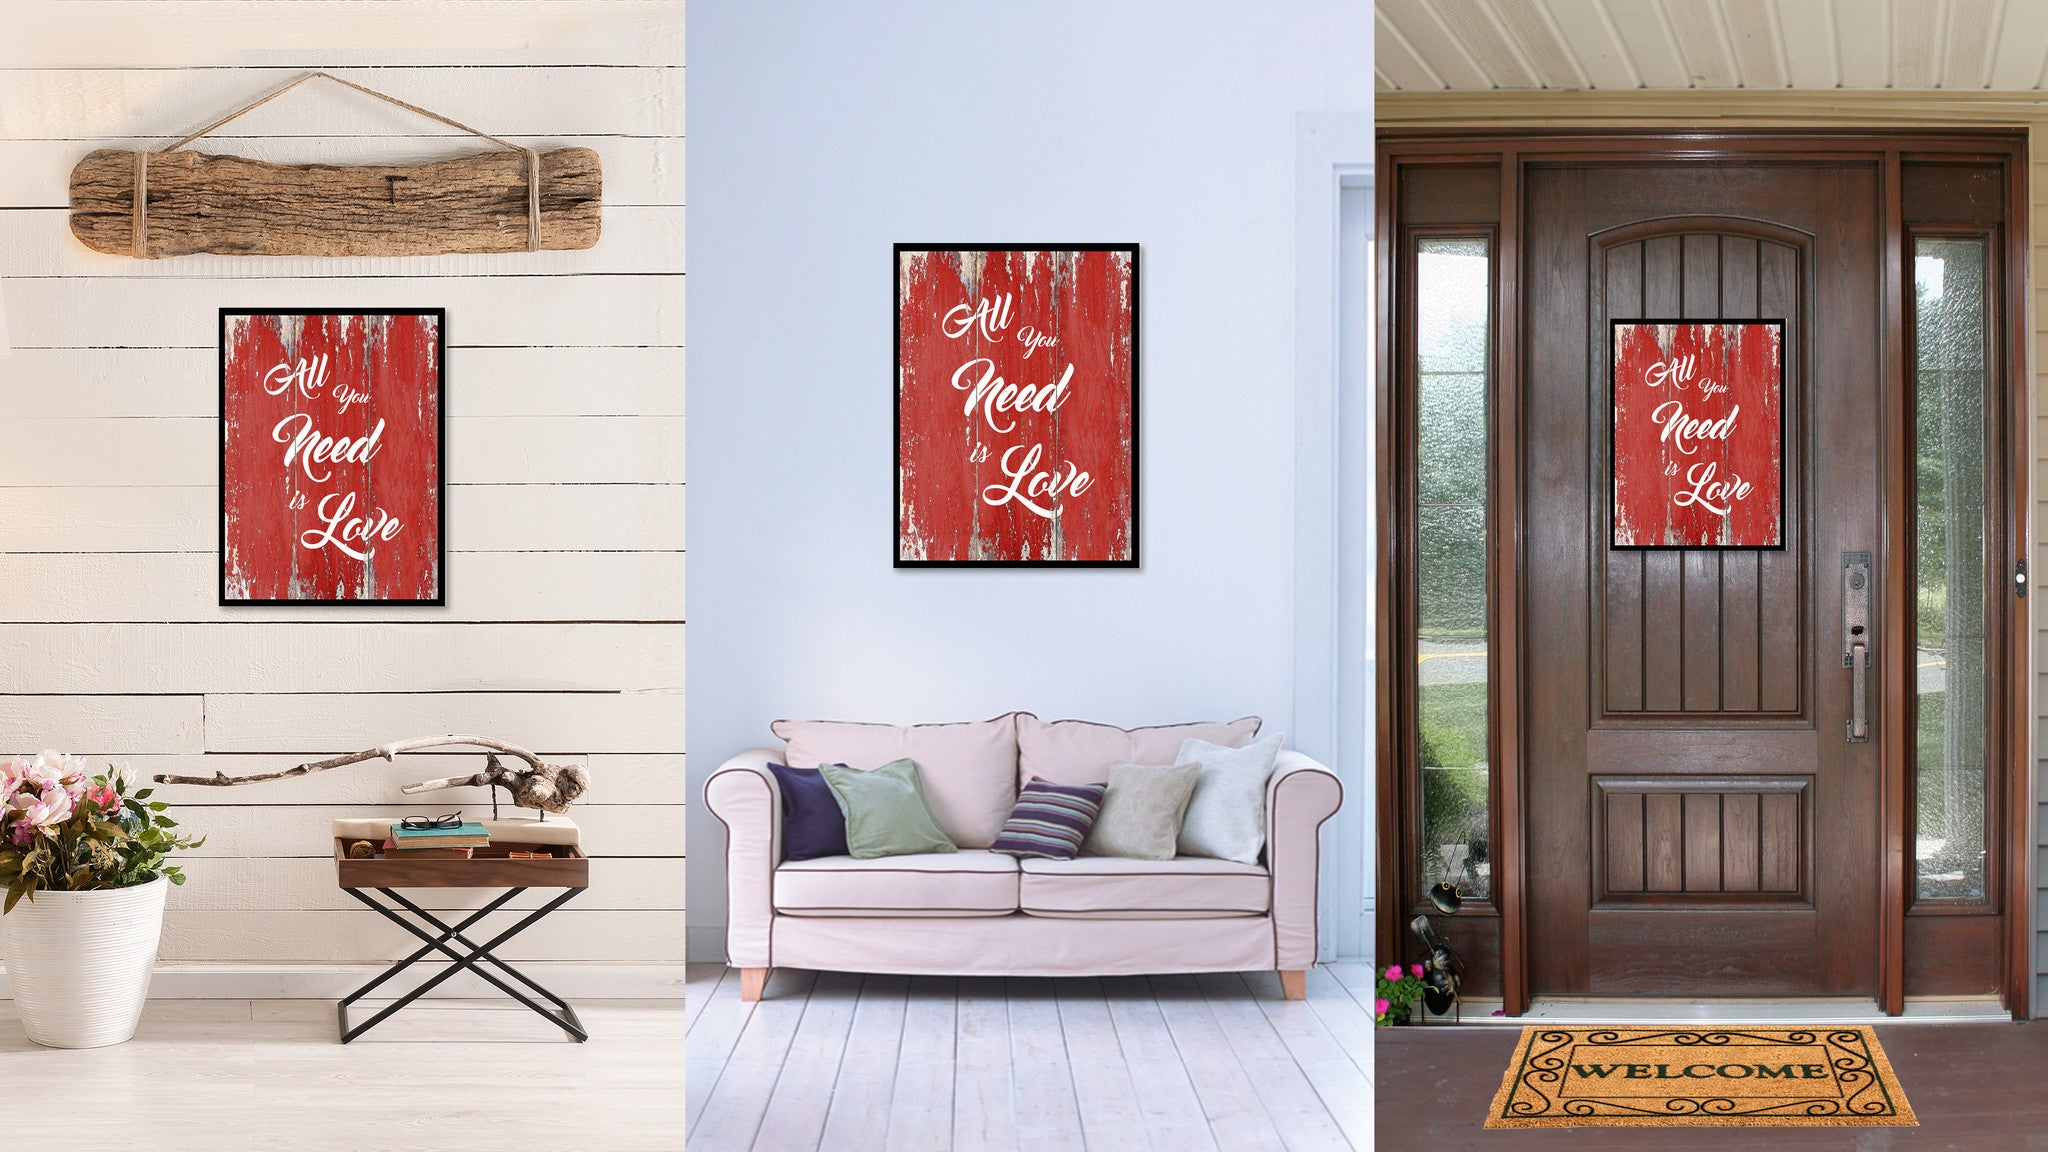 All You Need Is Love Happy Love Quote Saying Gift Ideas Home Decor Wall Art